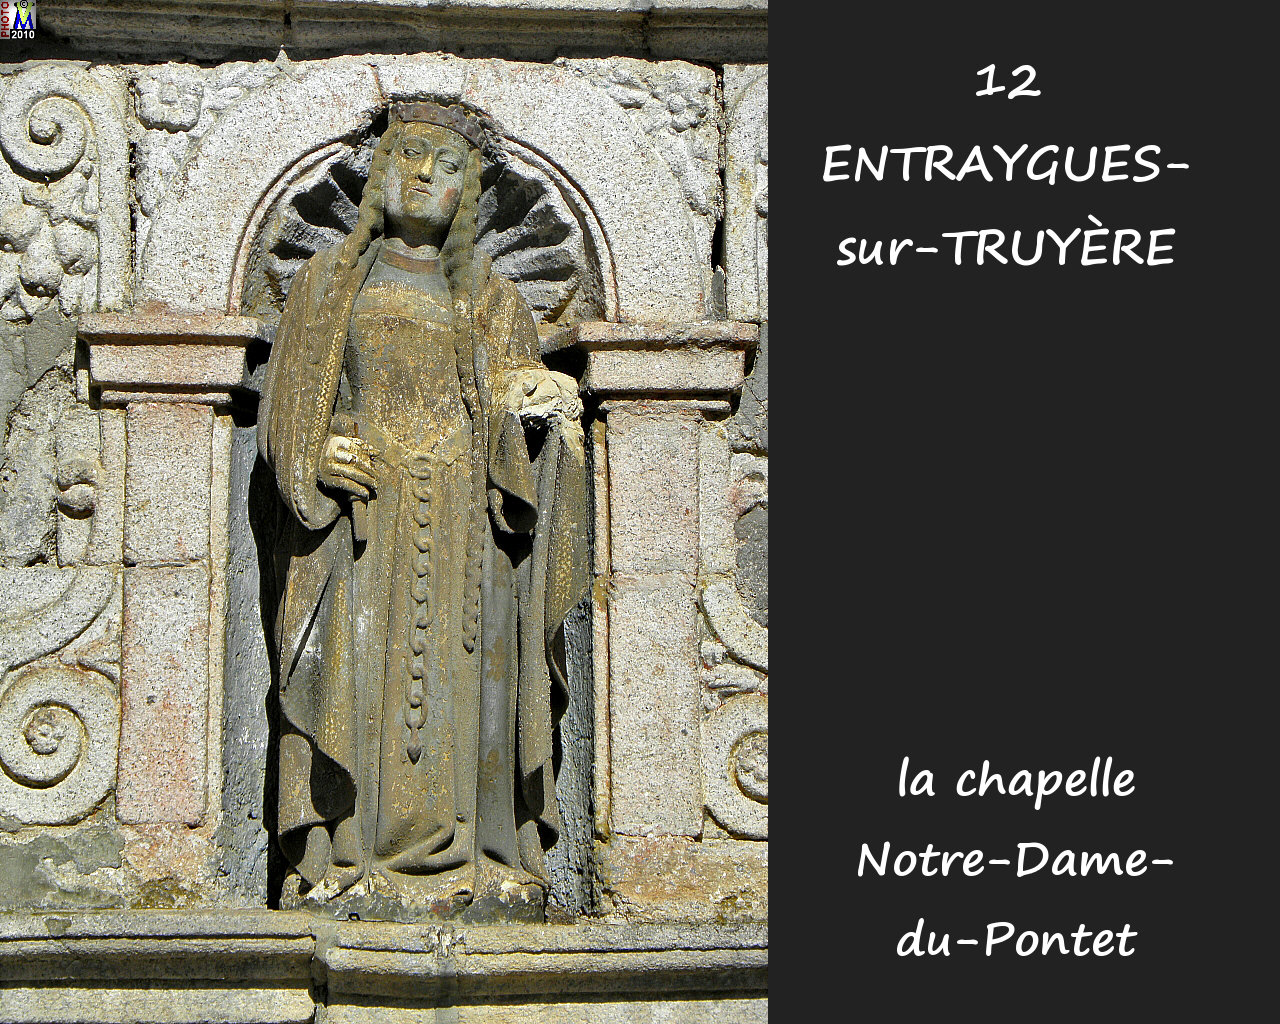 12ENTRAYGUES-TRUY_chapelle_114.jpg